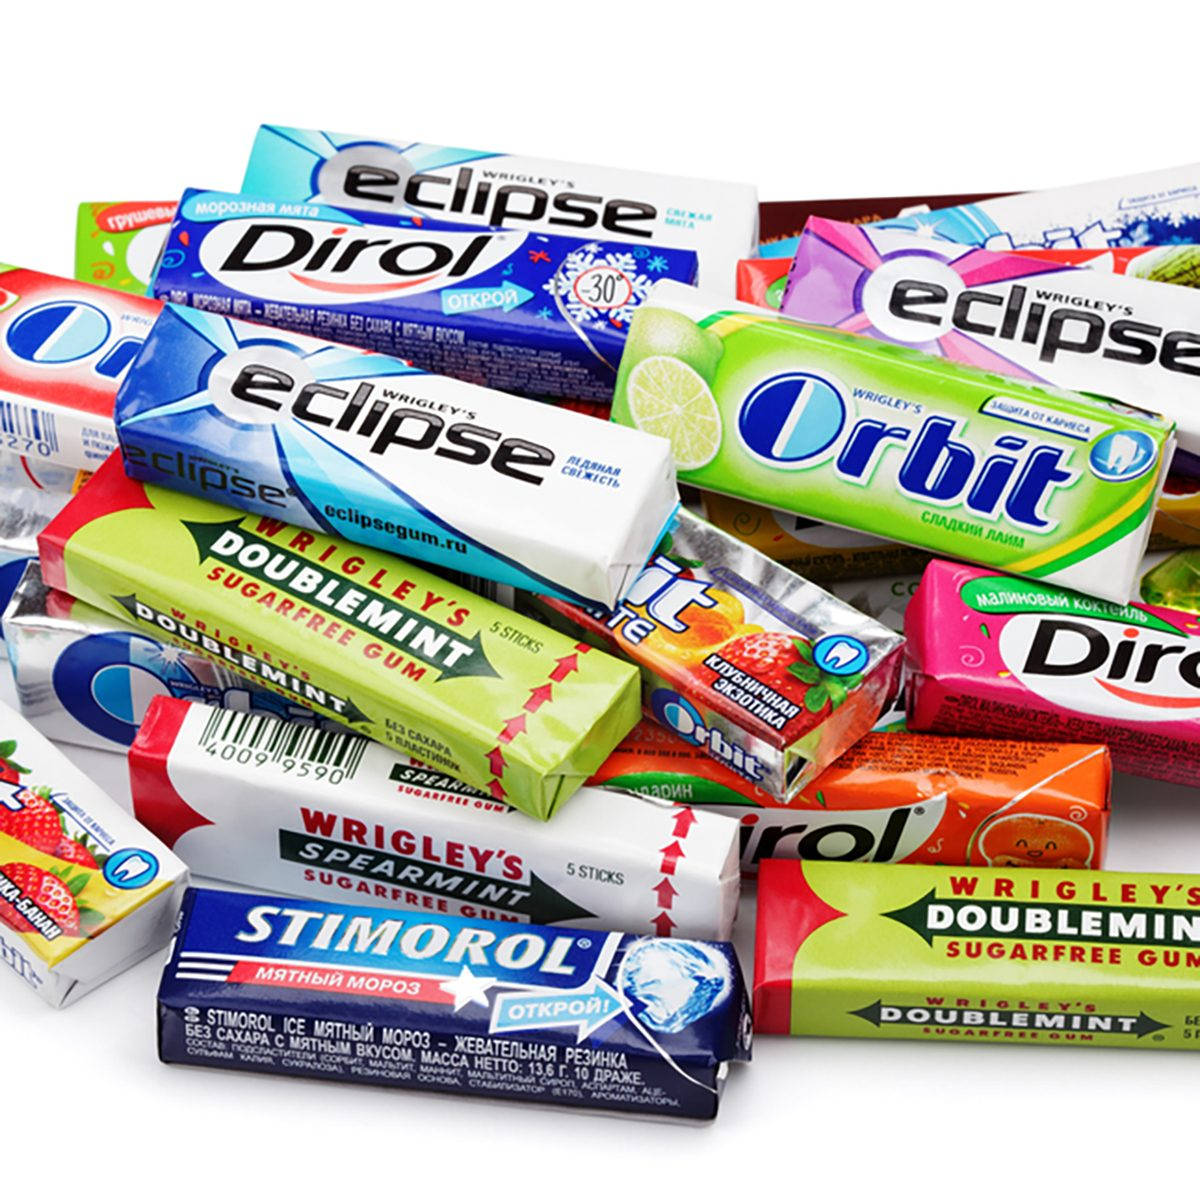 Heap of various brand chewing or bubble gum including Orbit, Dirol, Eclipse, Stimorol, Wrigley Spearmint and Doublemint